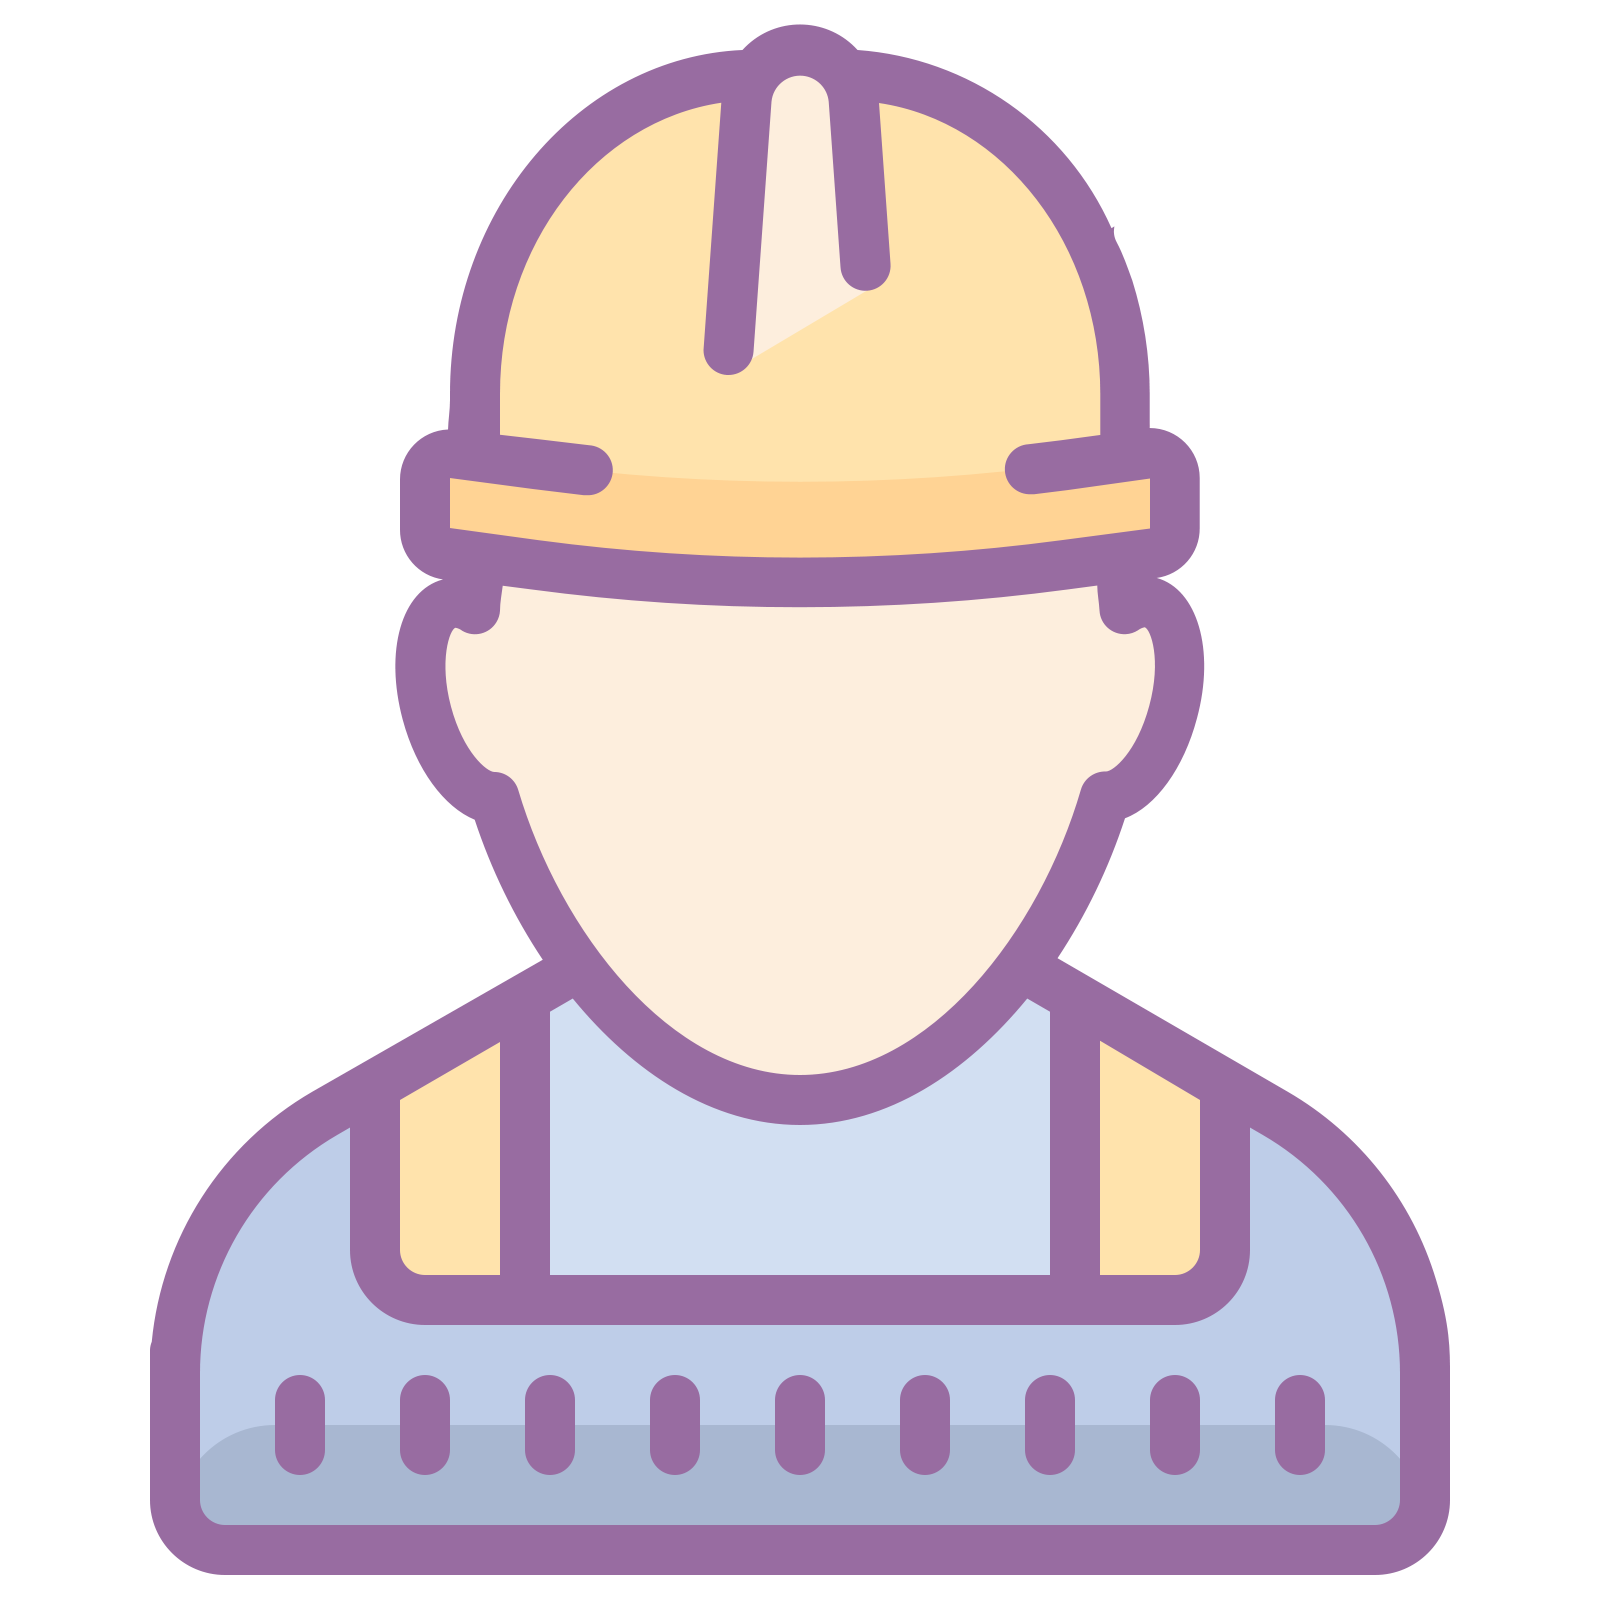 Icon free download png. Worker vector transparent image download